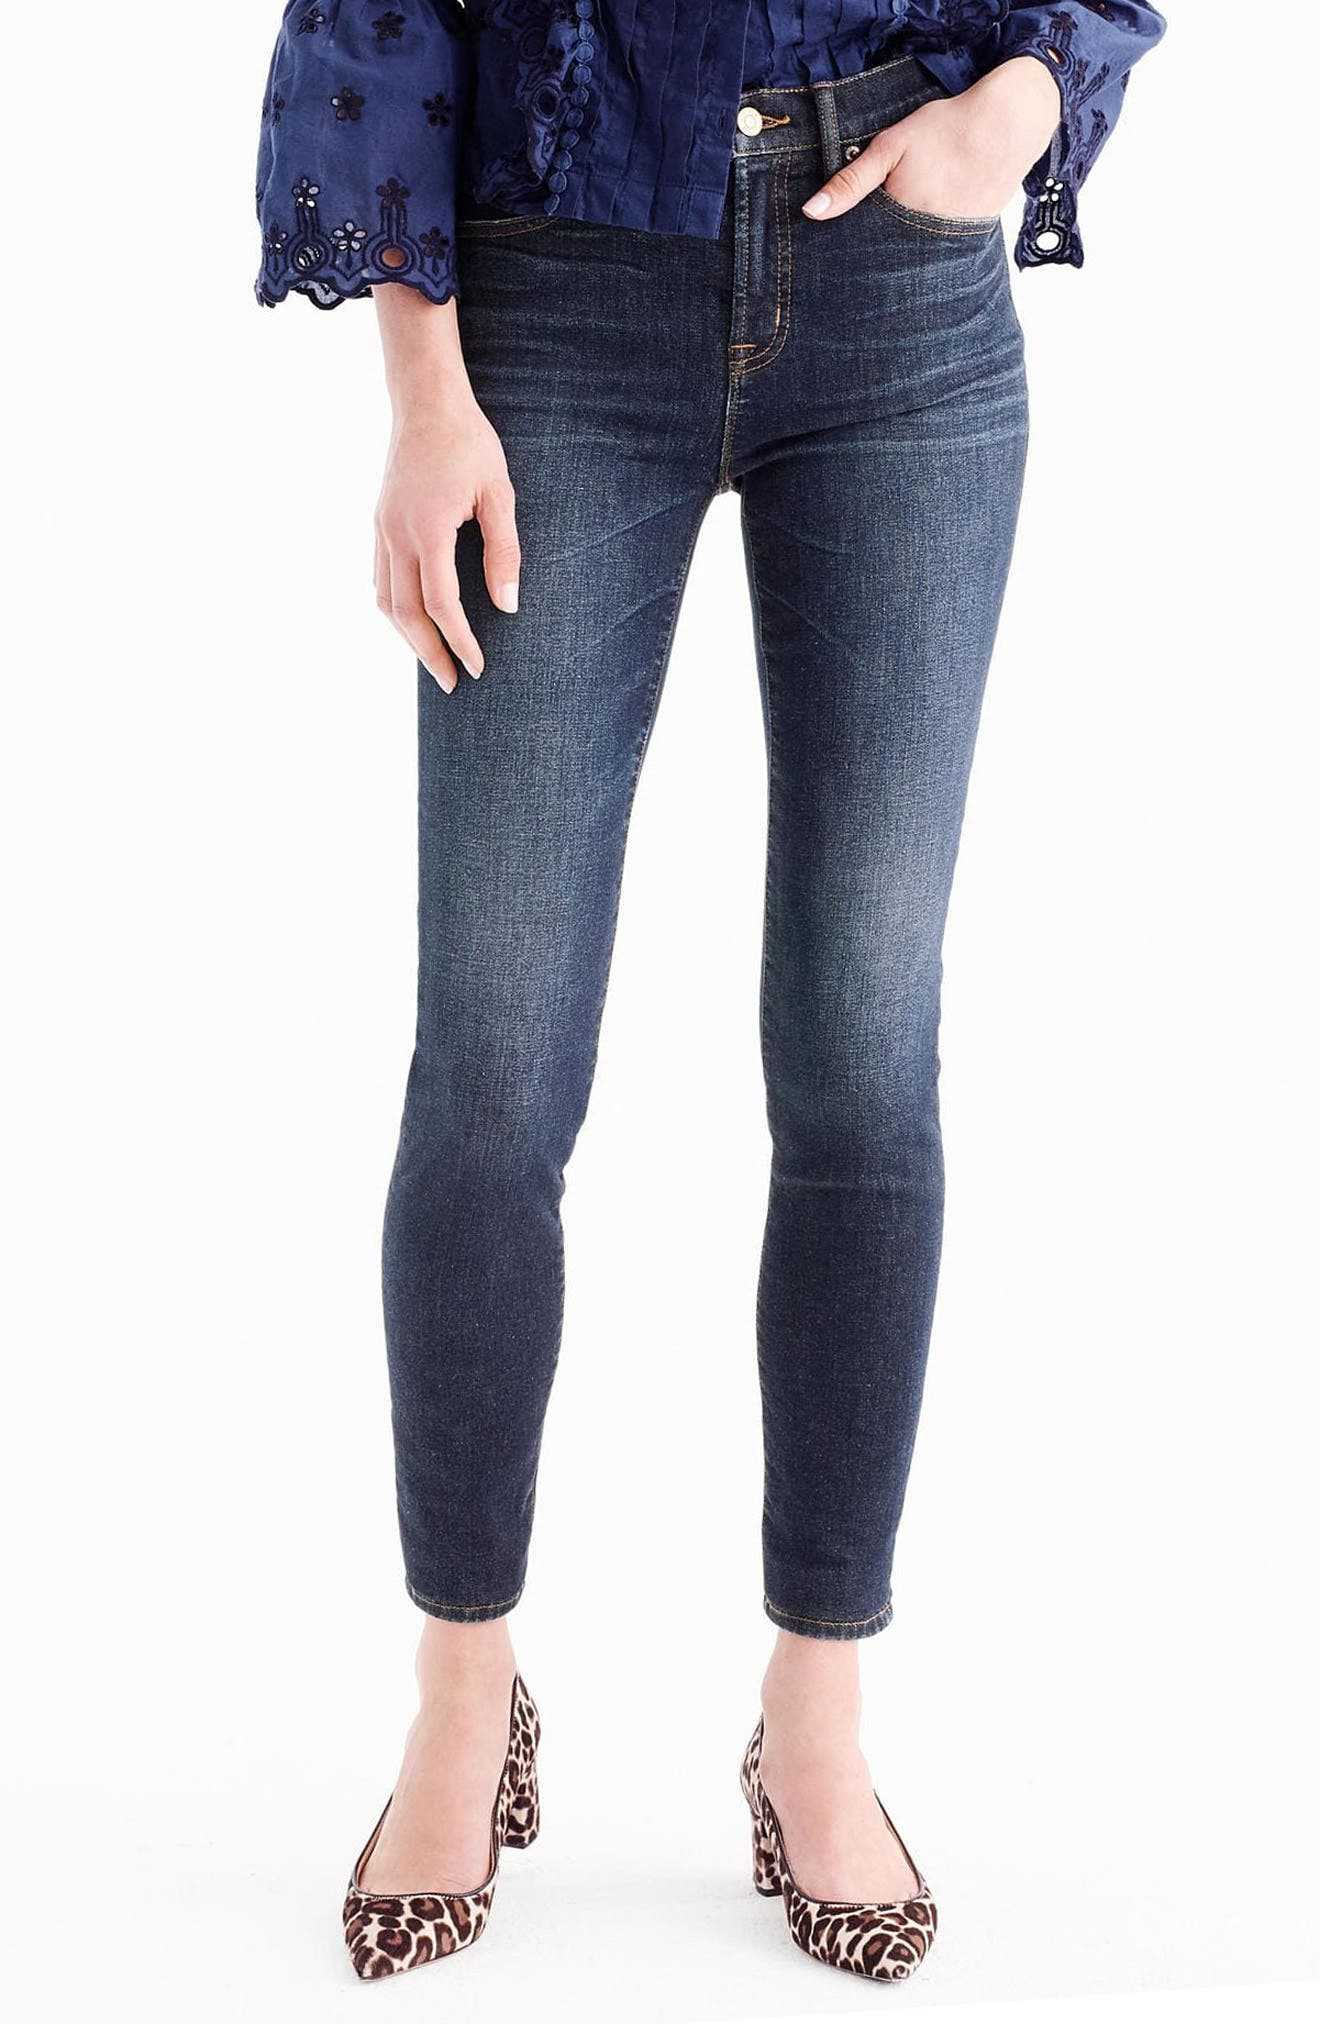 Main Image - J.Crew High Rise Toothpick Jeans (Solano) (Regular & Petite)